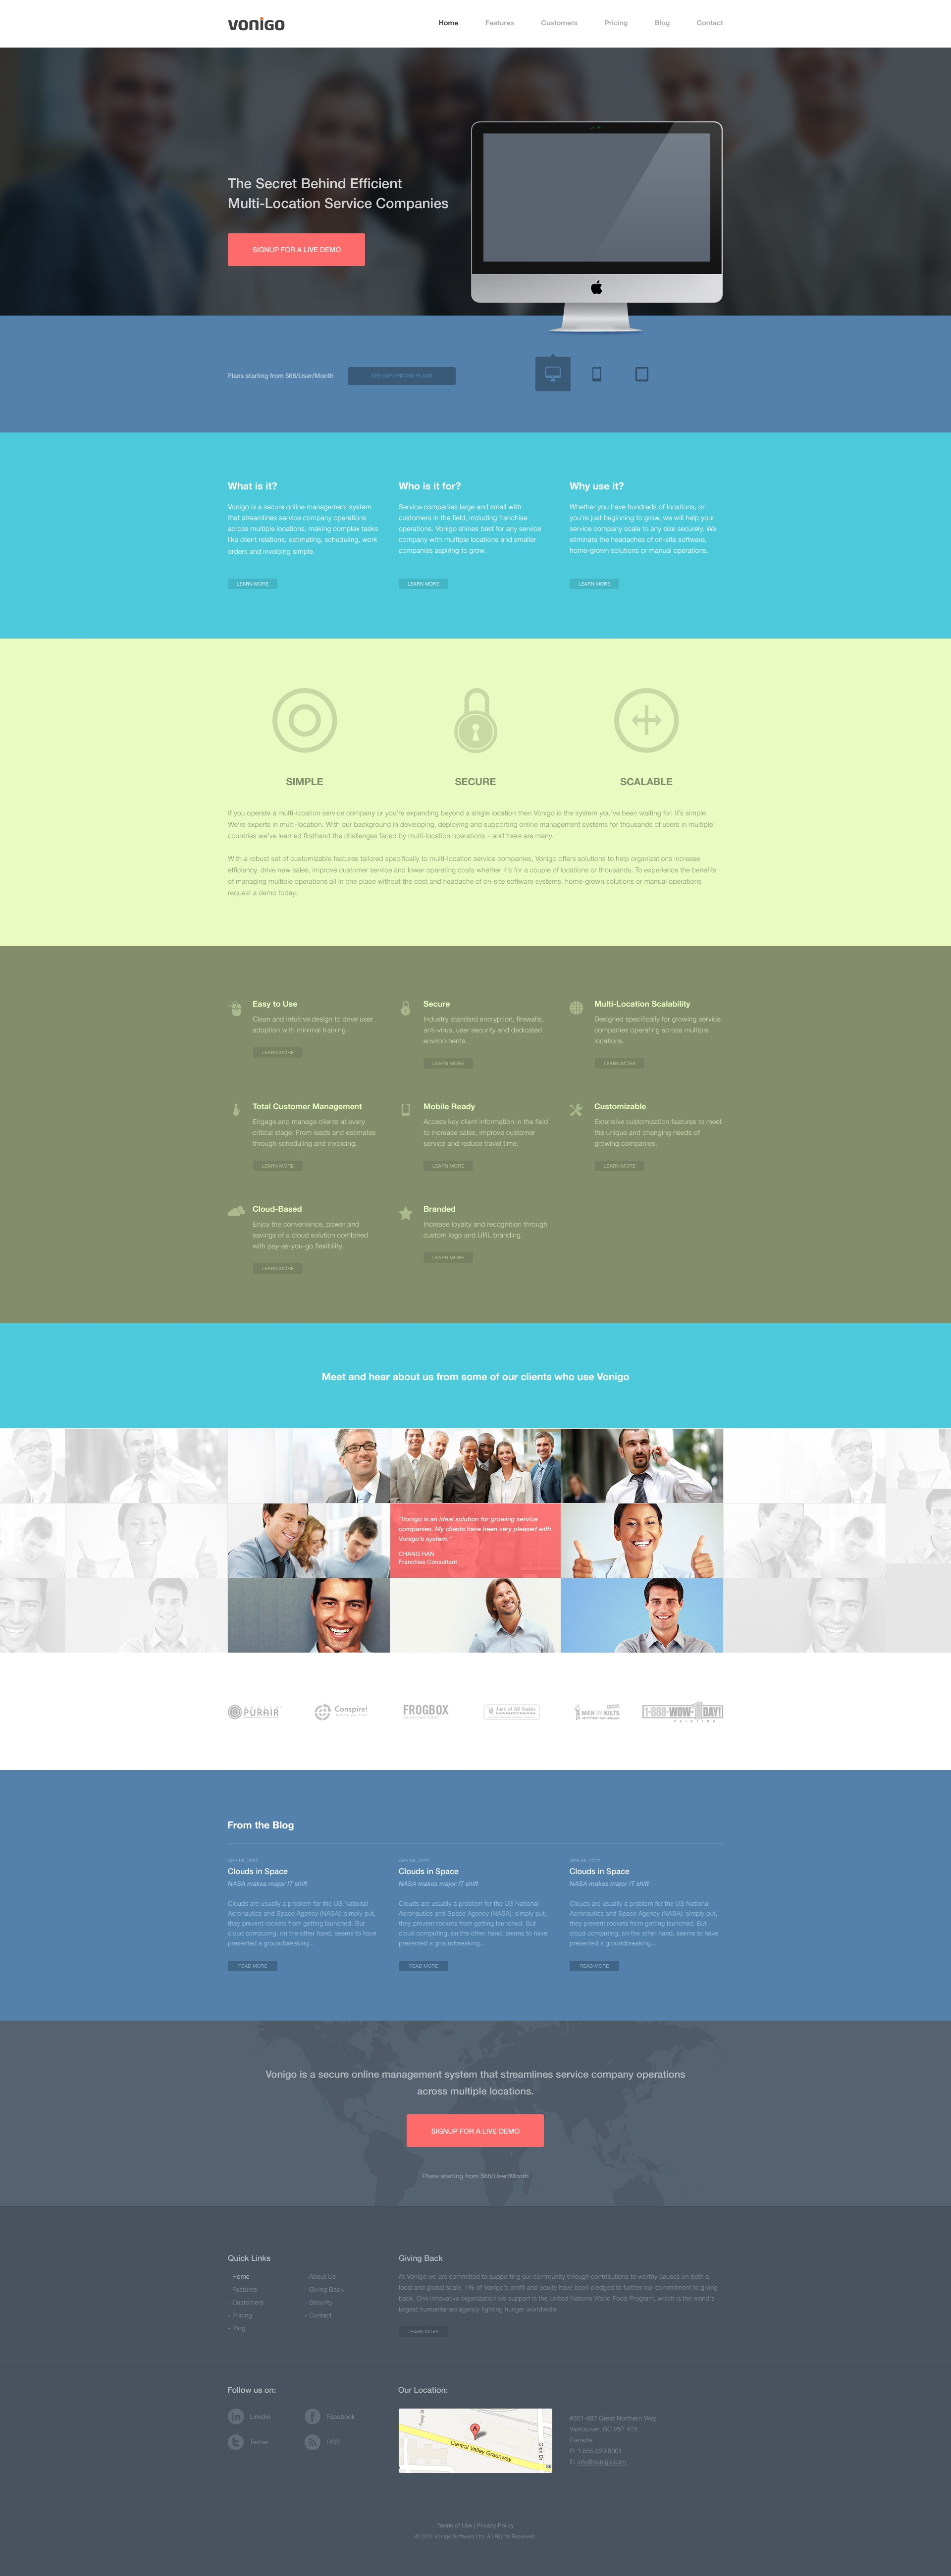 Homepage2a